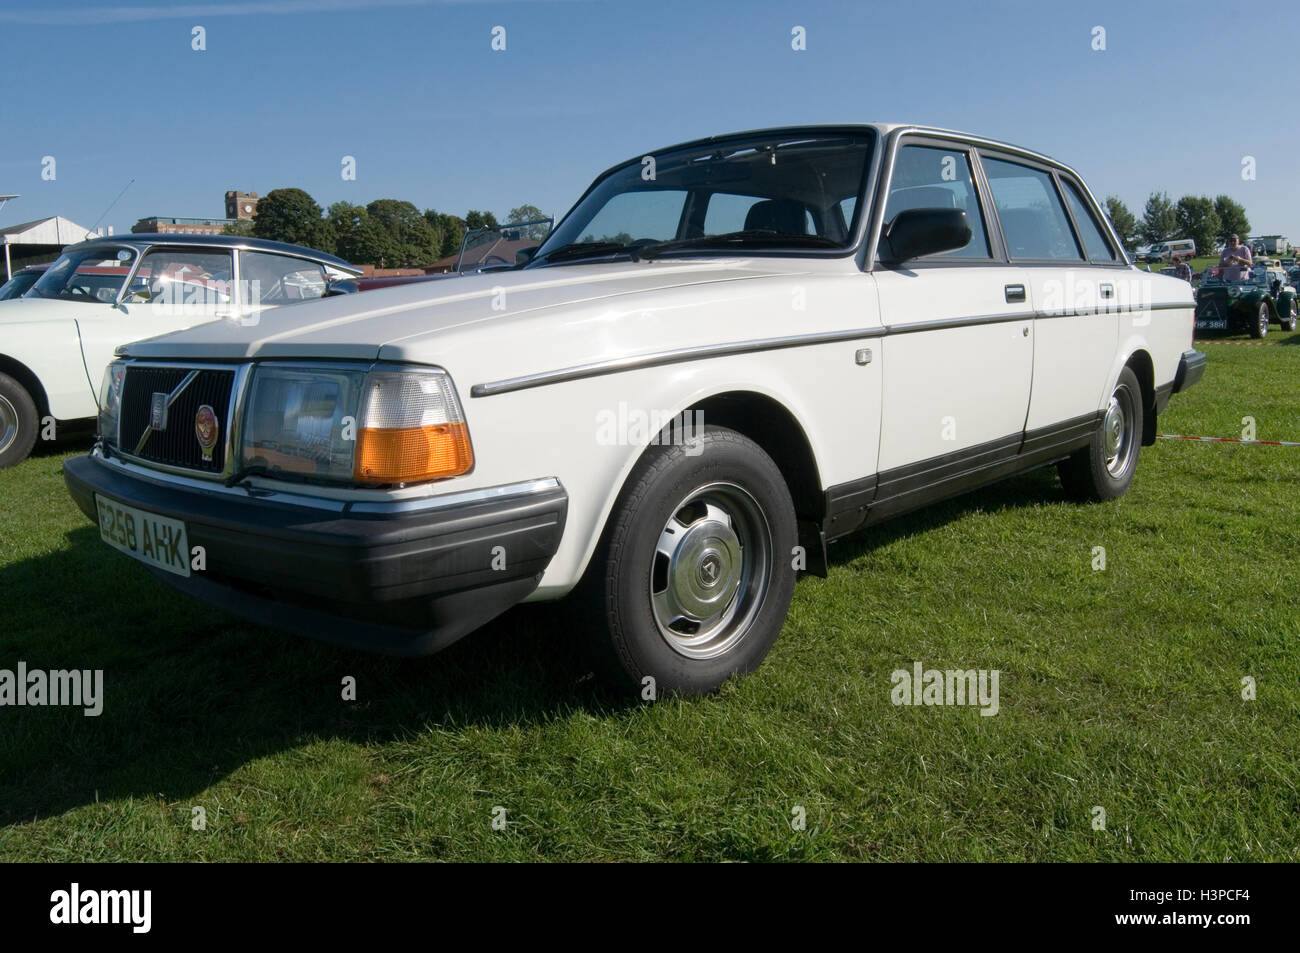 for chxpa imgur sedan volvo sale on album gallery